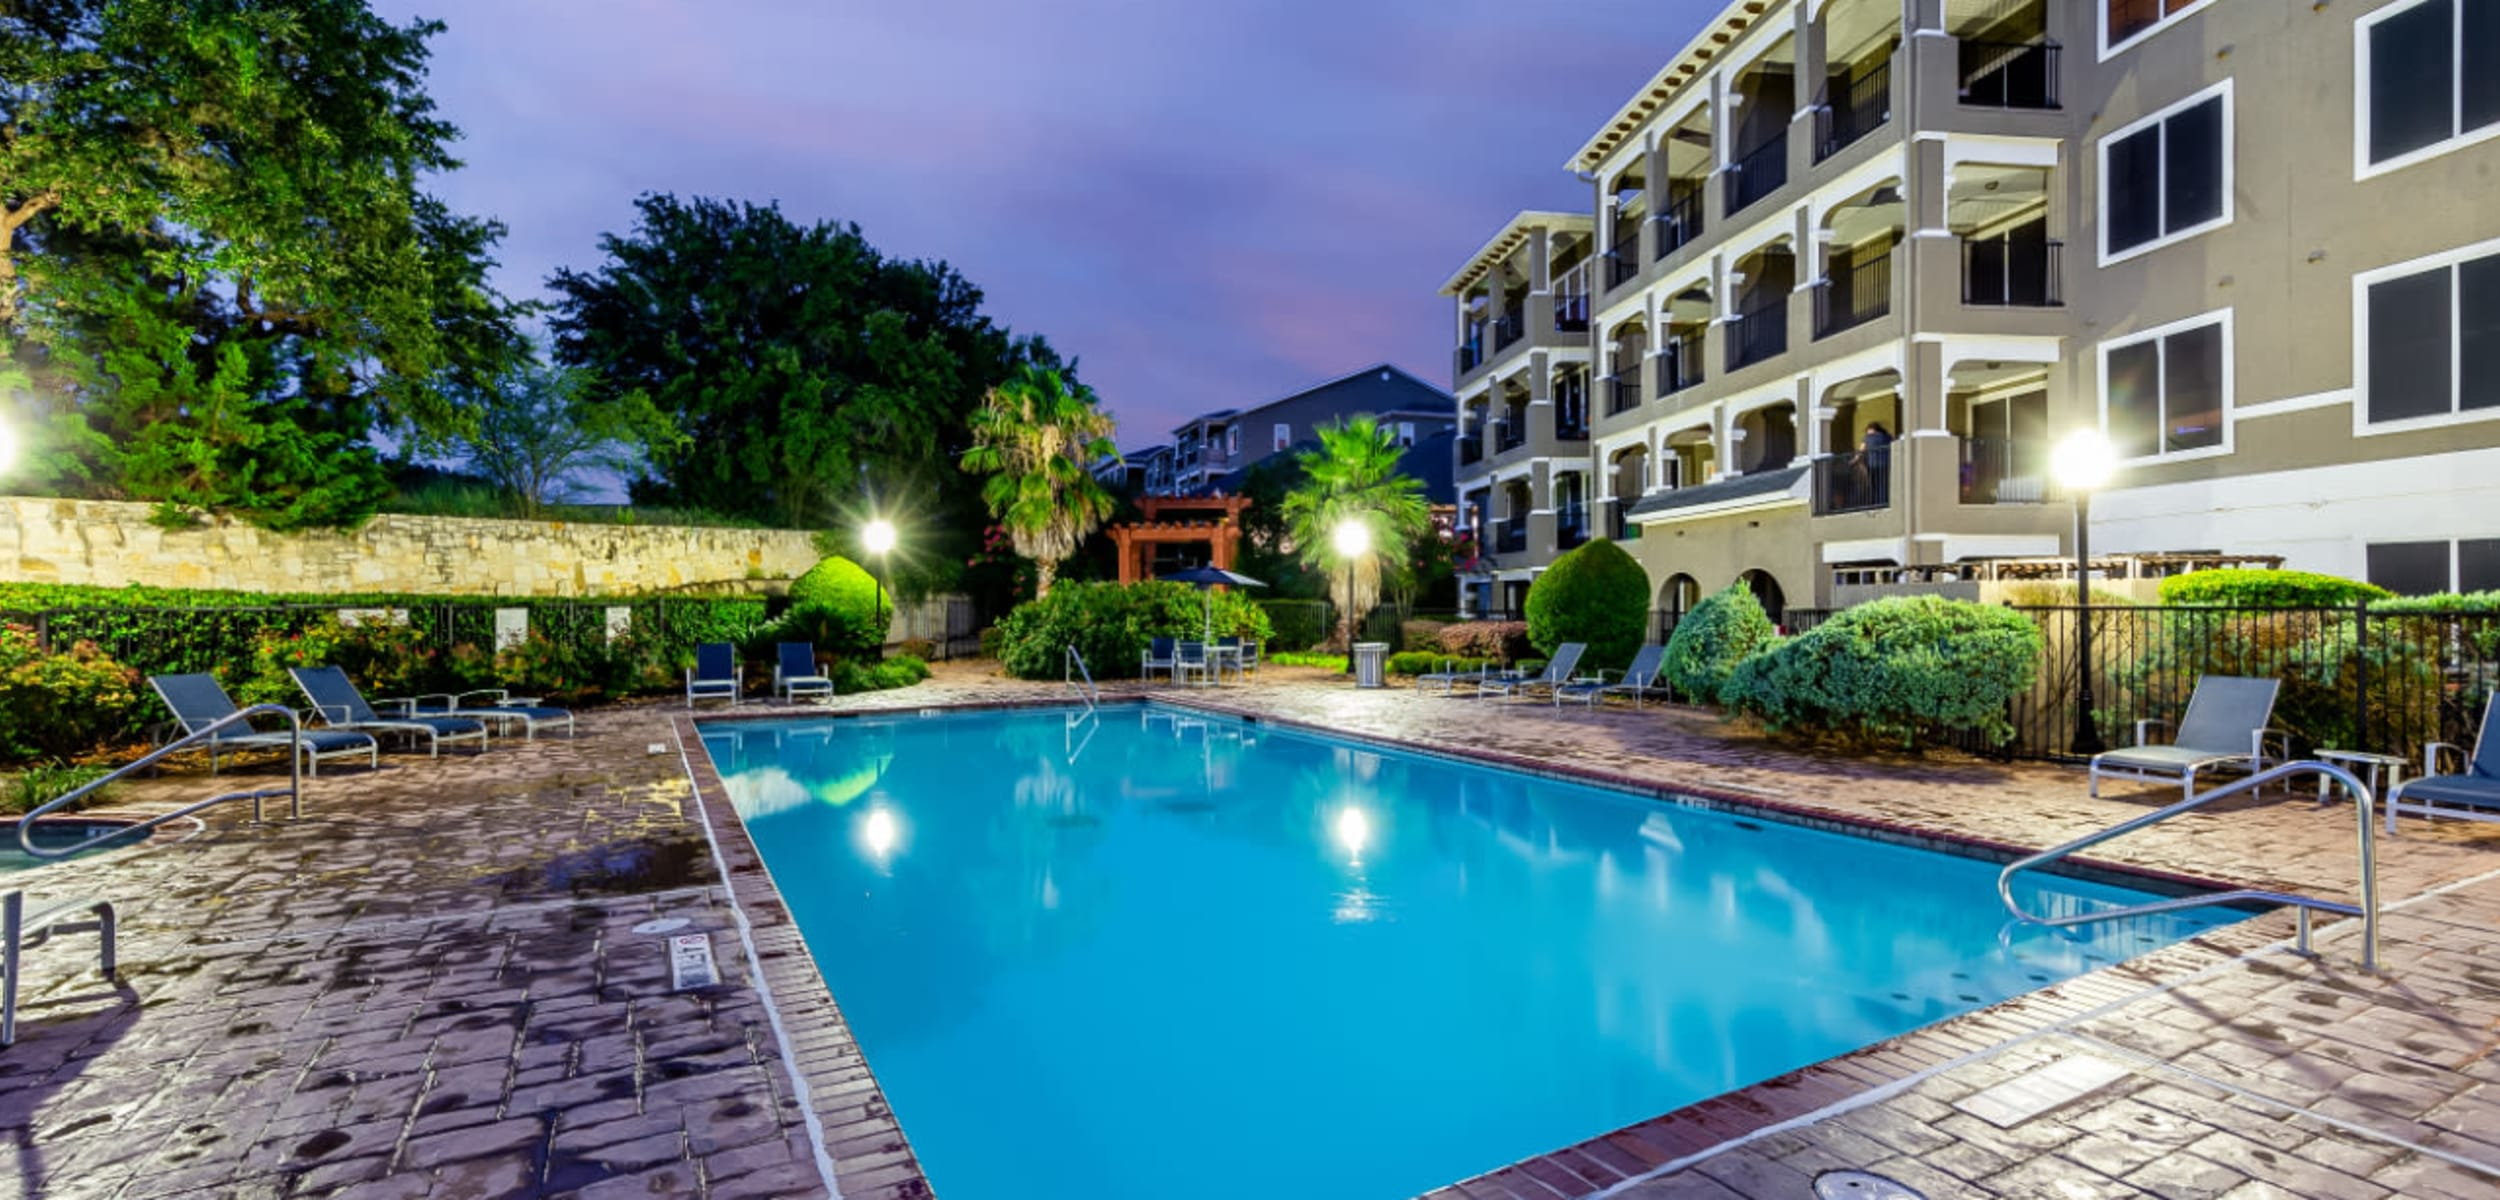 Lighted pool at sunset overlooking units at Marquis at Stone Oak in San Antonio Texas,